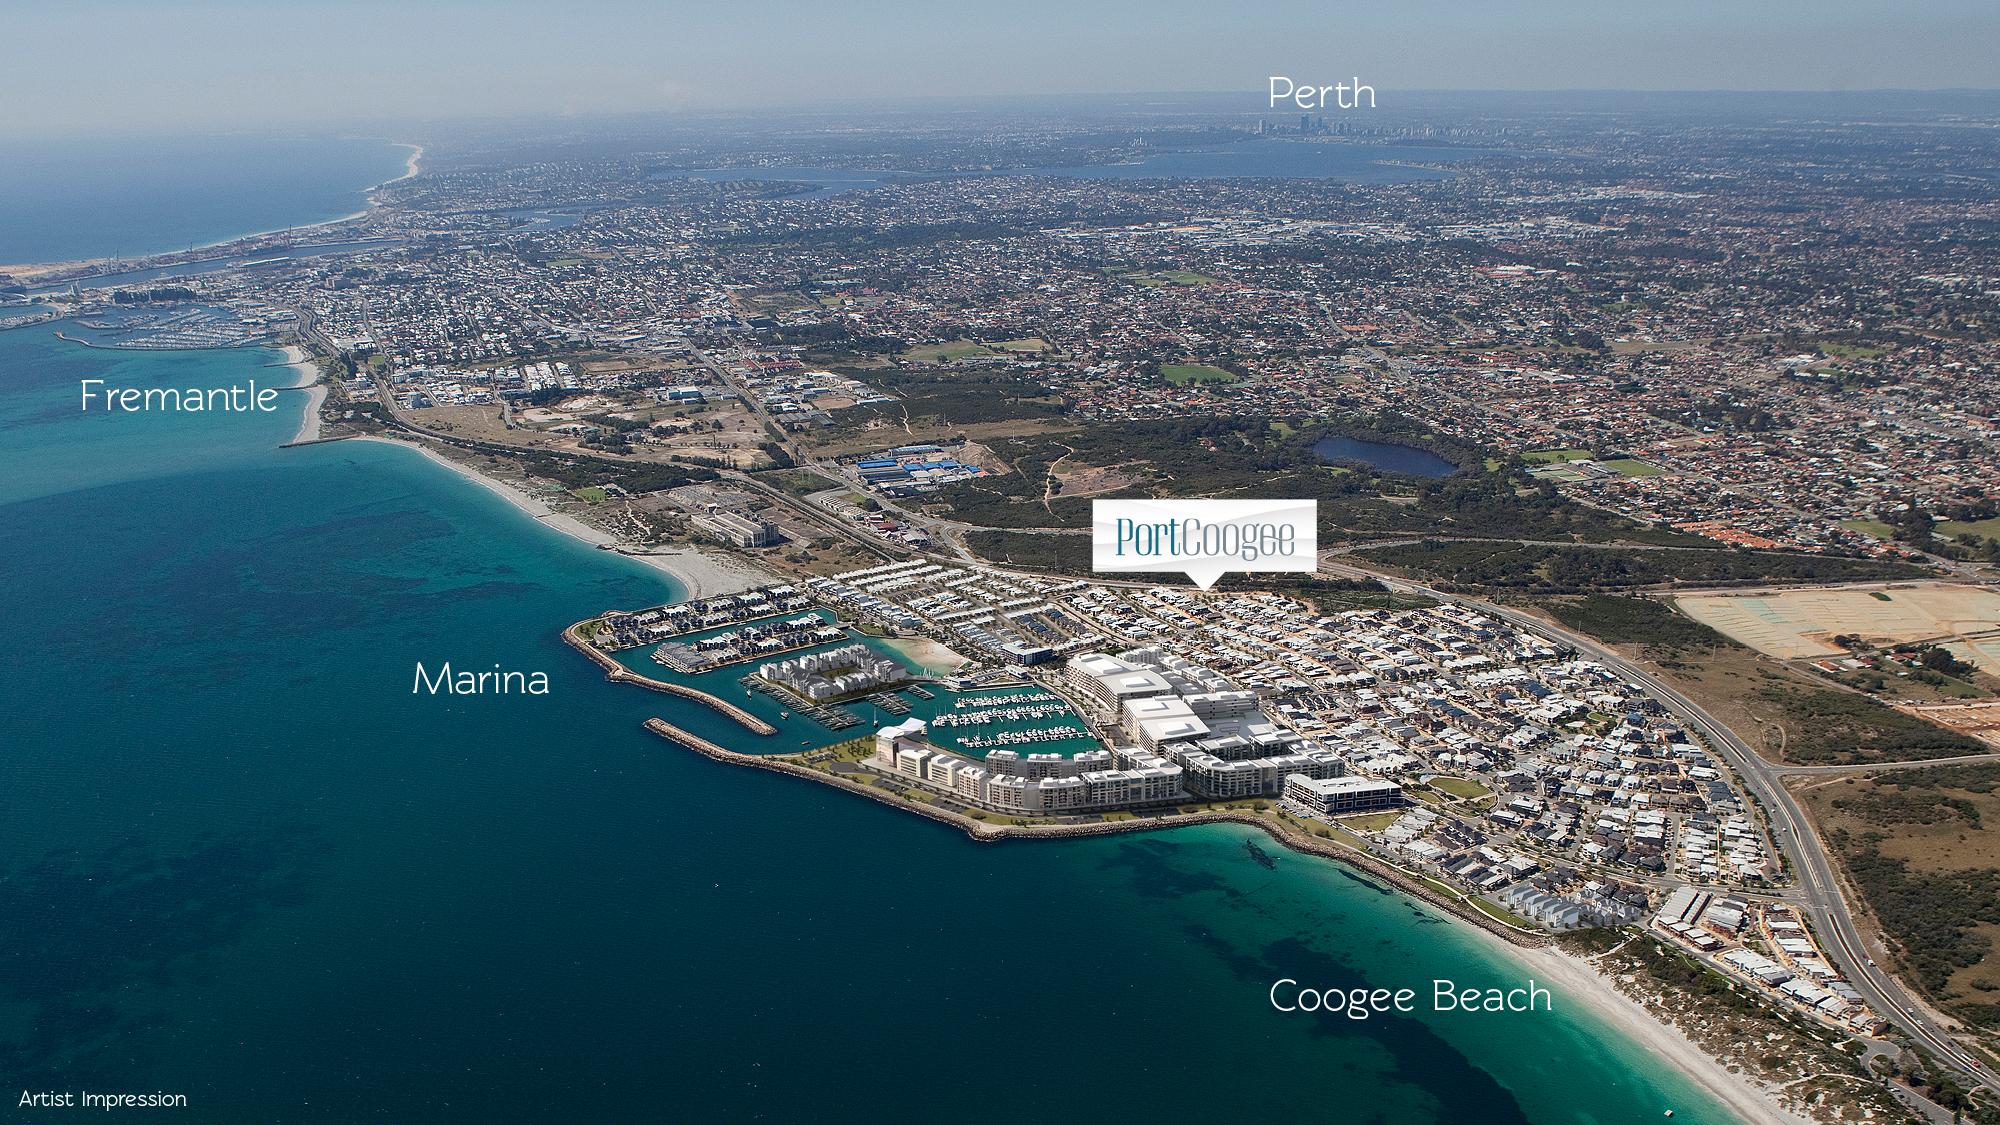 Artist impression aerial of Port Coogee